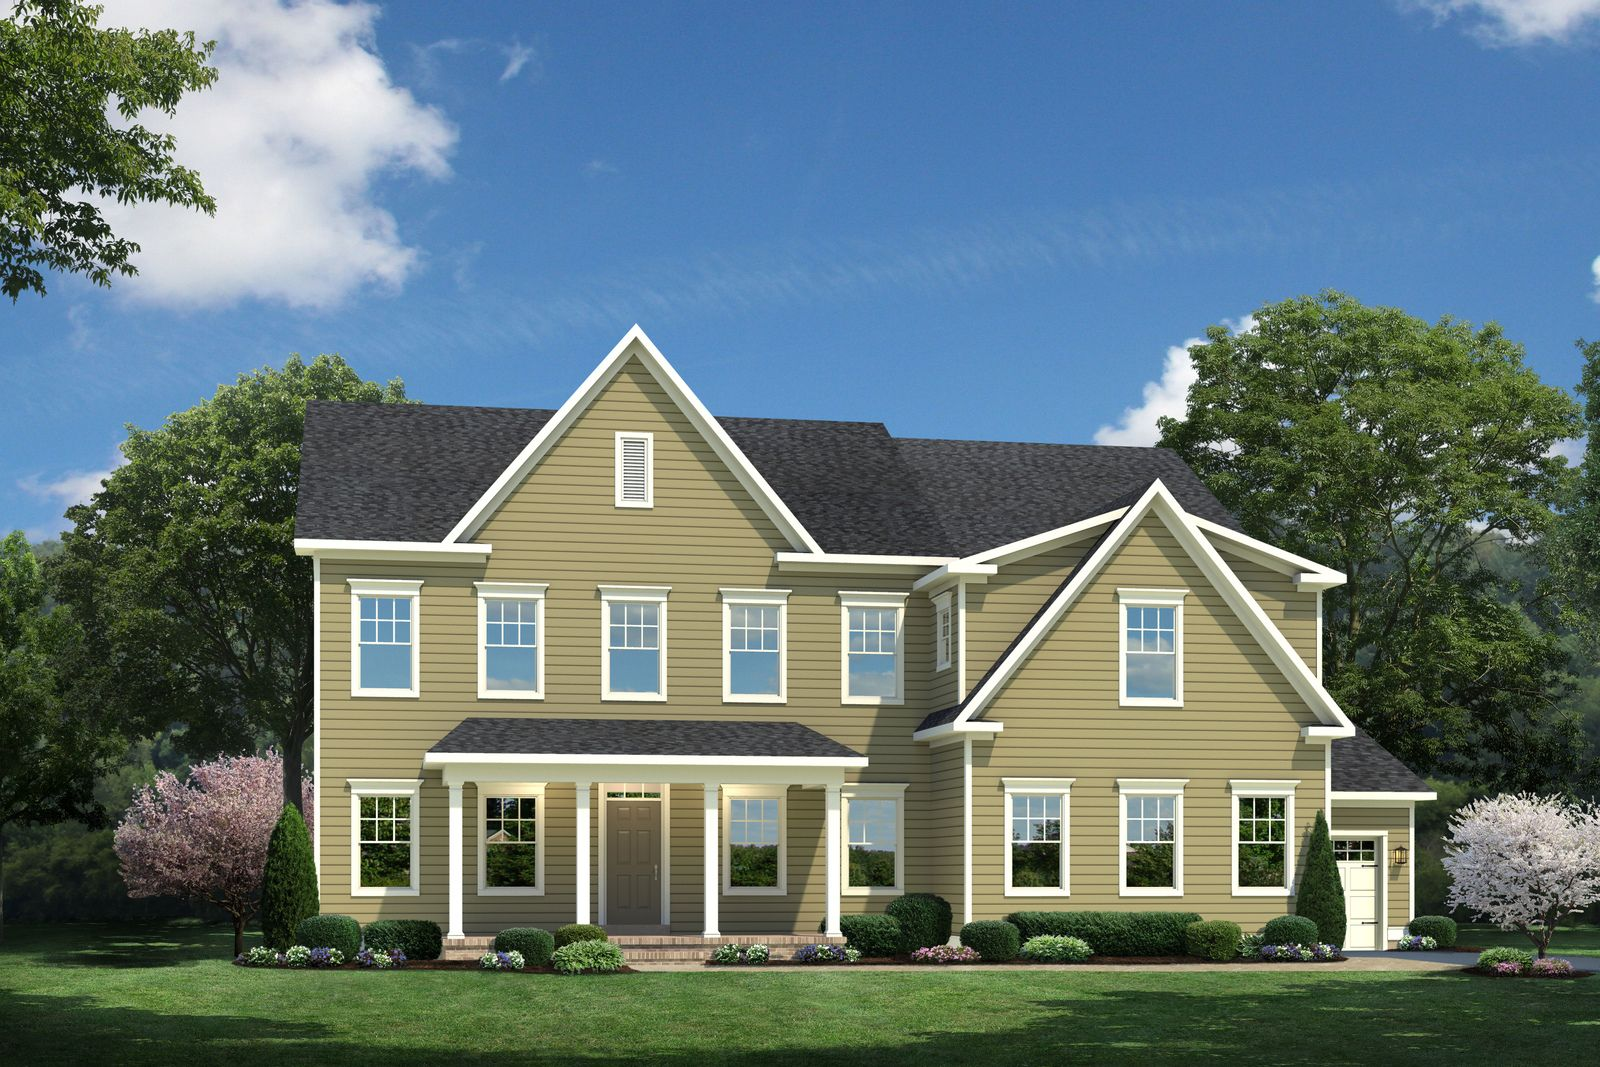 Single Family for Active at Potomac Shores Estates - Corsica At Potomac Shores 2175 Potomac River Blvd. Dumfries, Virginia 22026 United States